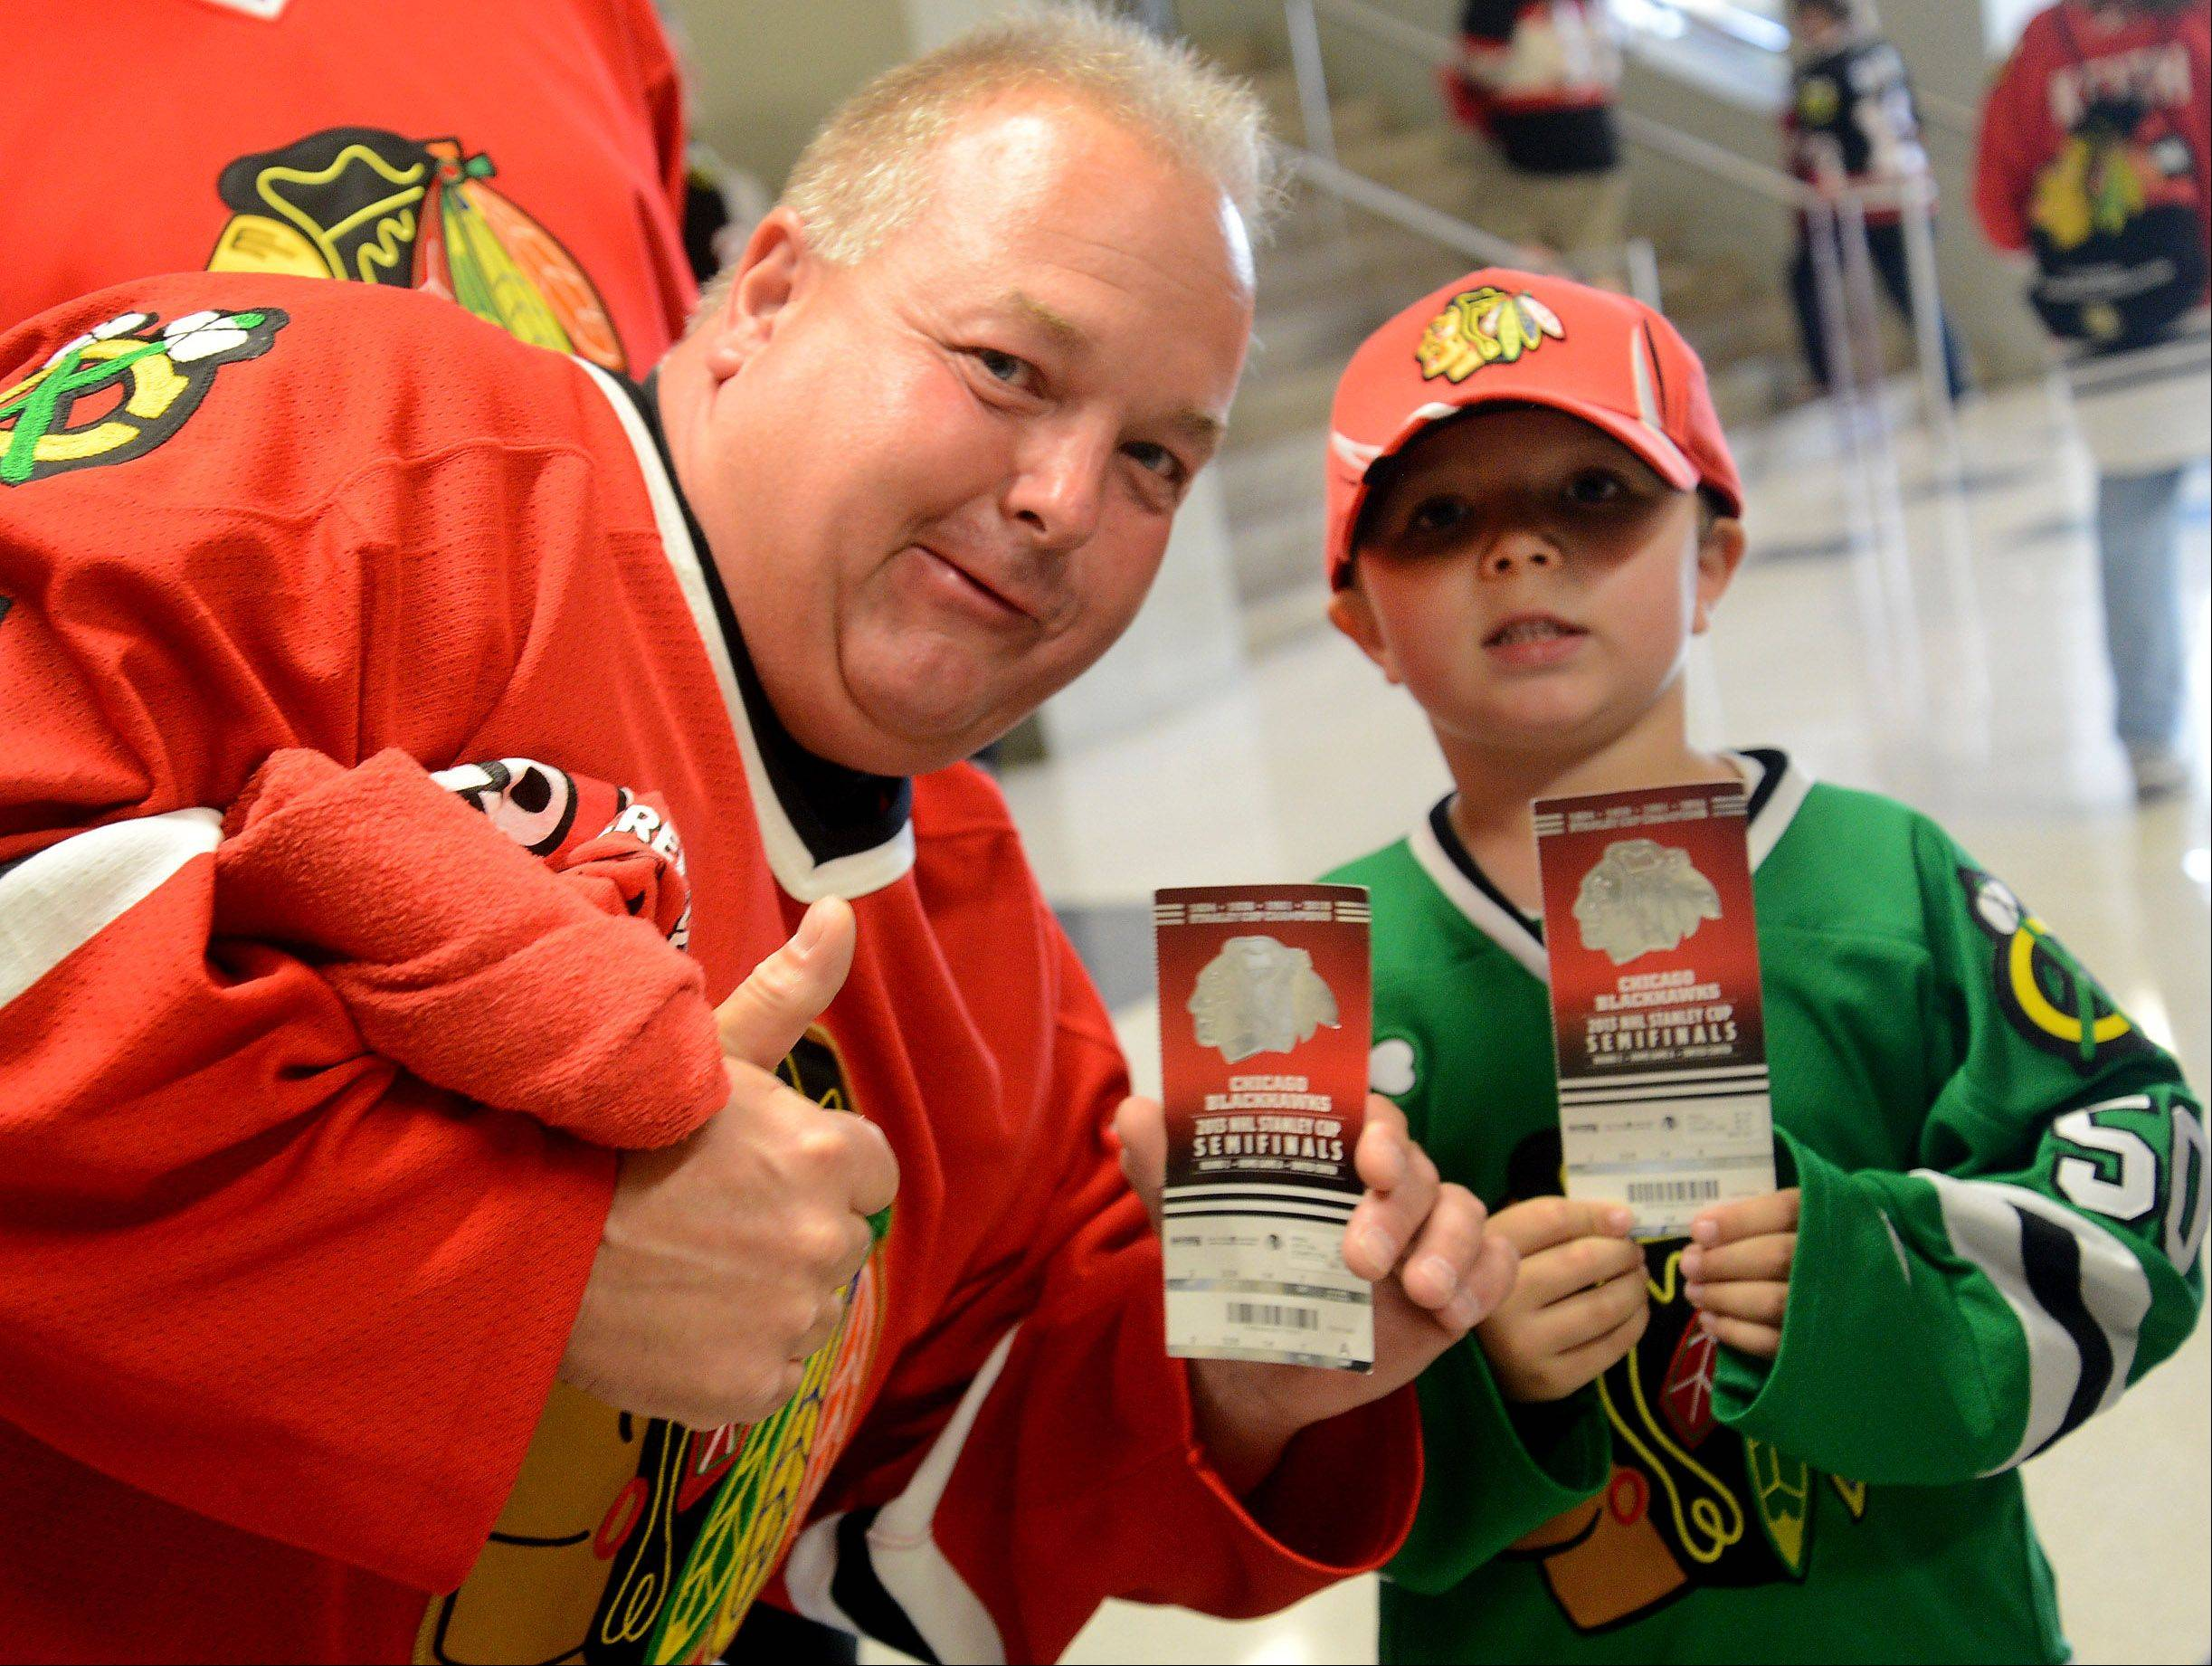 Mike and his son Mikey Szorc of Chicago got their tickets for Game 1 of Western Conference semifinals between the Chicago Blackhawks and the Detroit Red Wings.